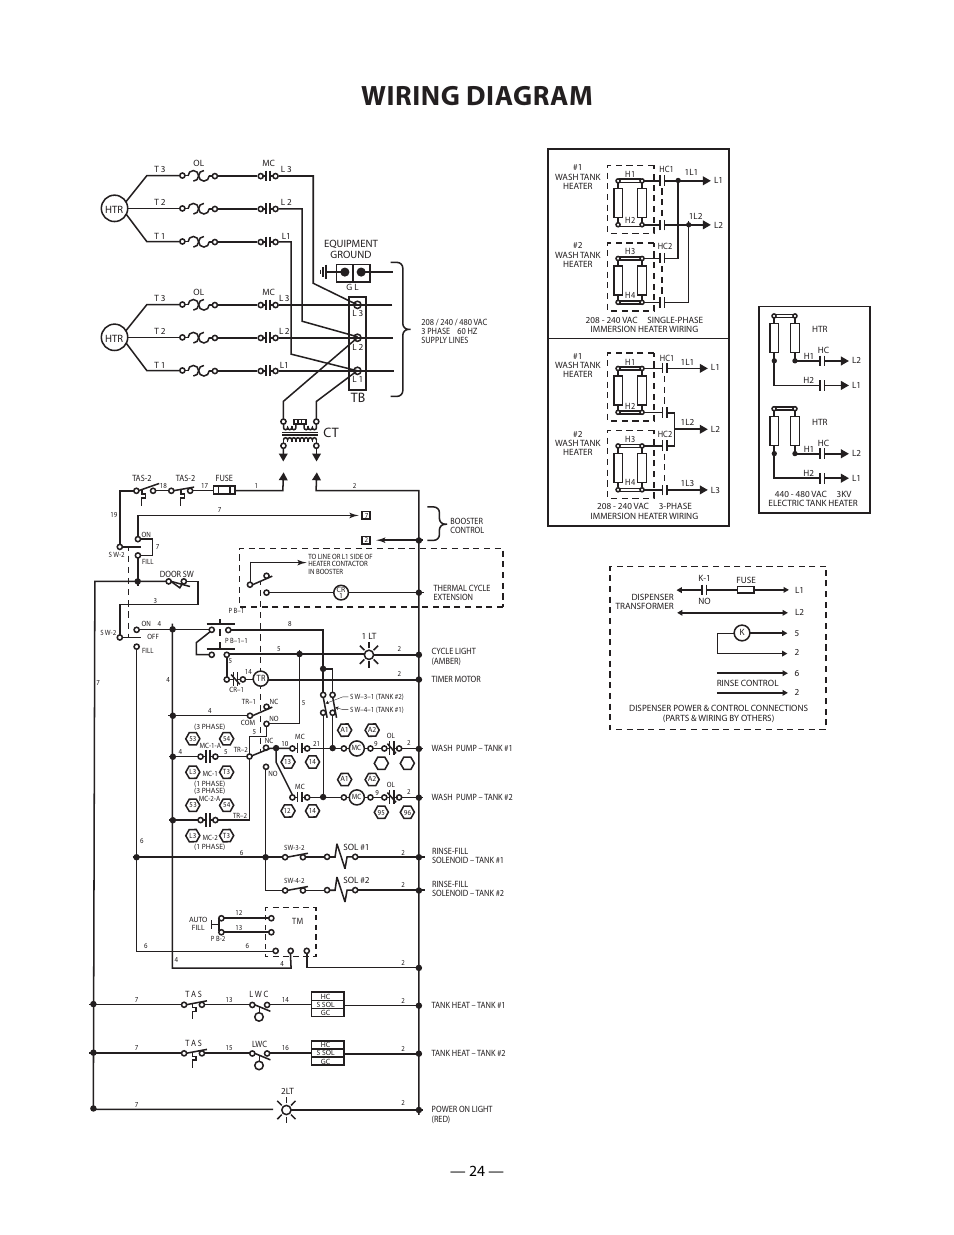 wiring diagram model mc1a wiring library Car Wiring Diagrams wiring diagram ct tb blakeslee dd 8 user manual page 24 28